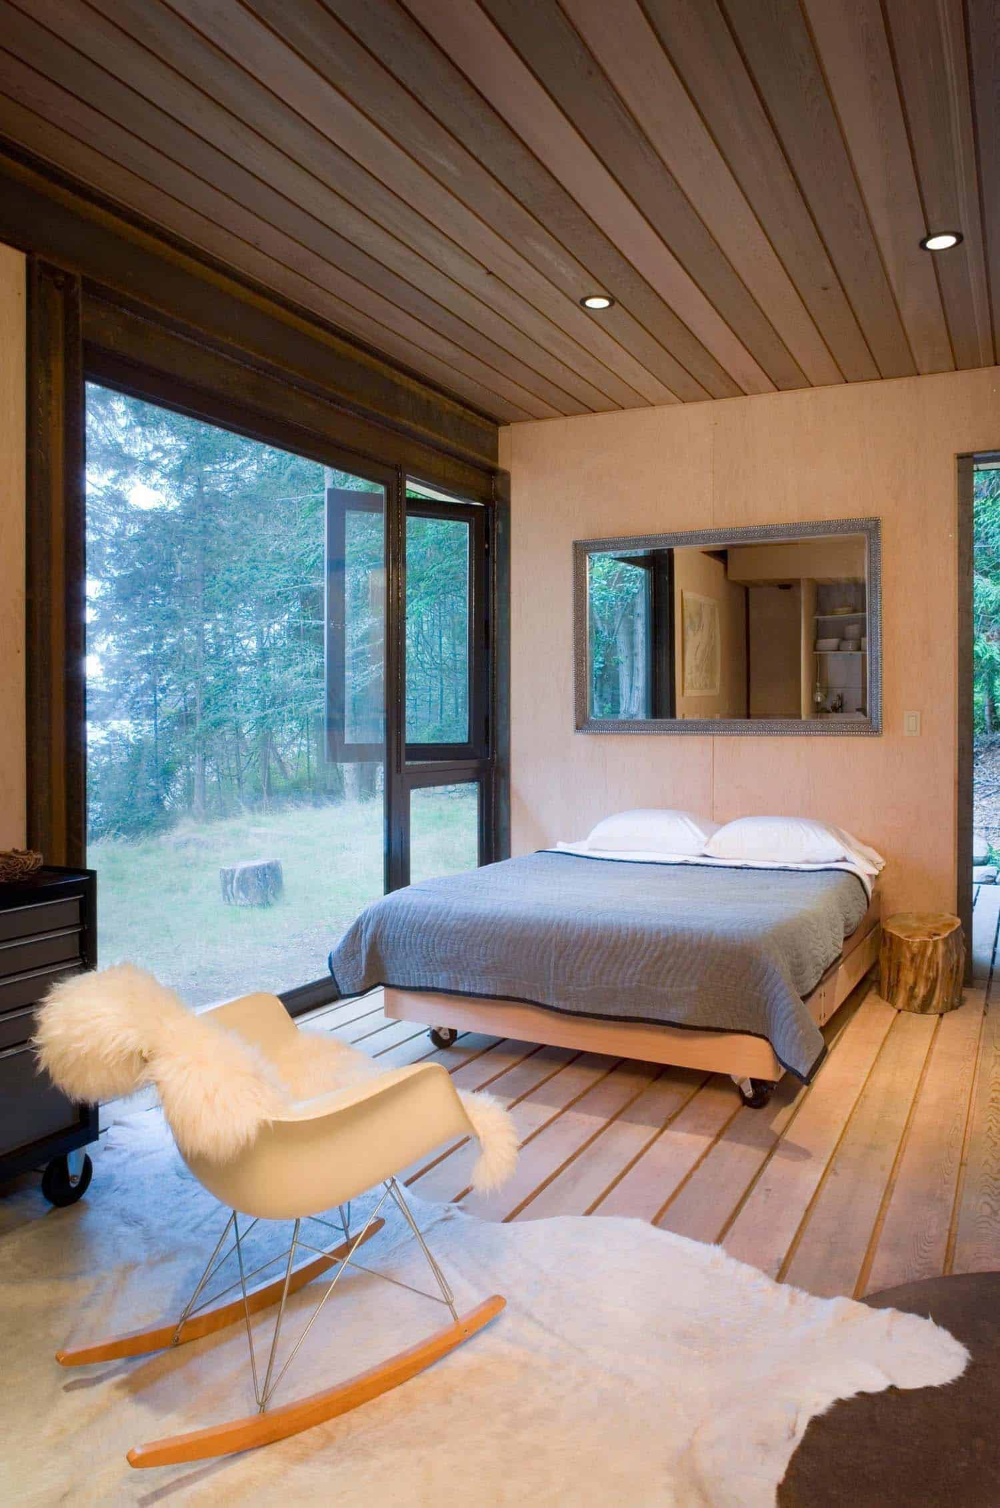 Tiny one room cabin inspired by nature on the Gulf Islands